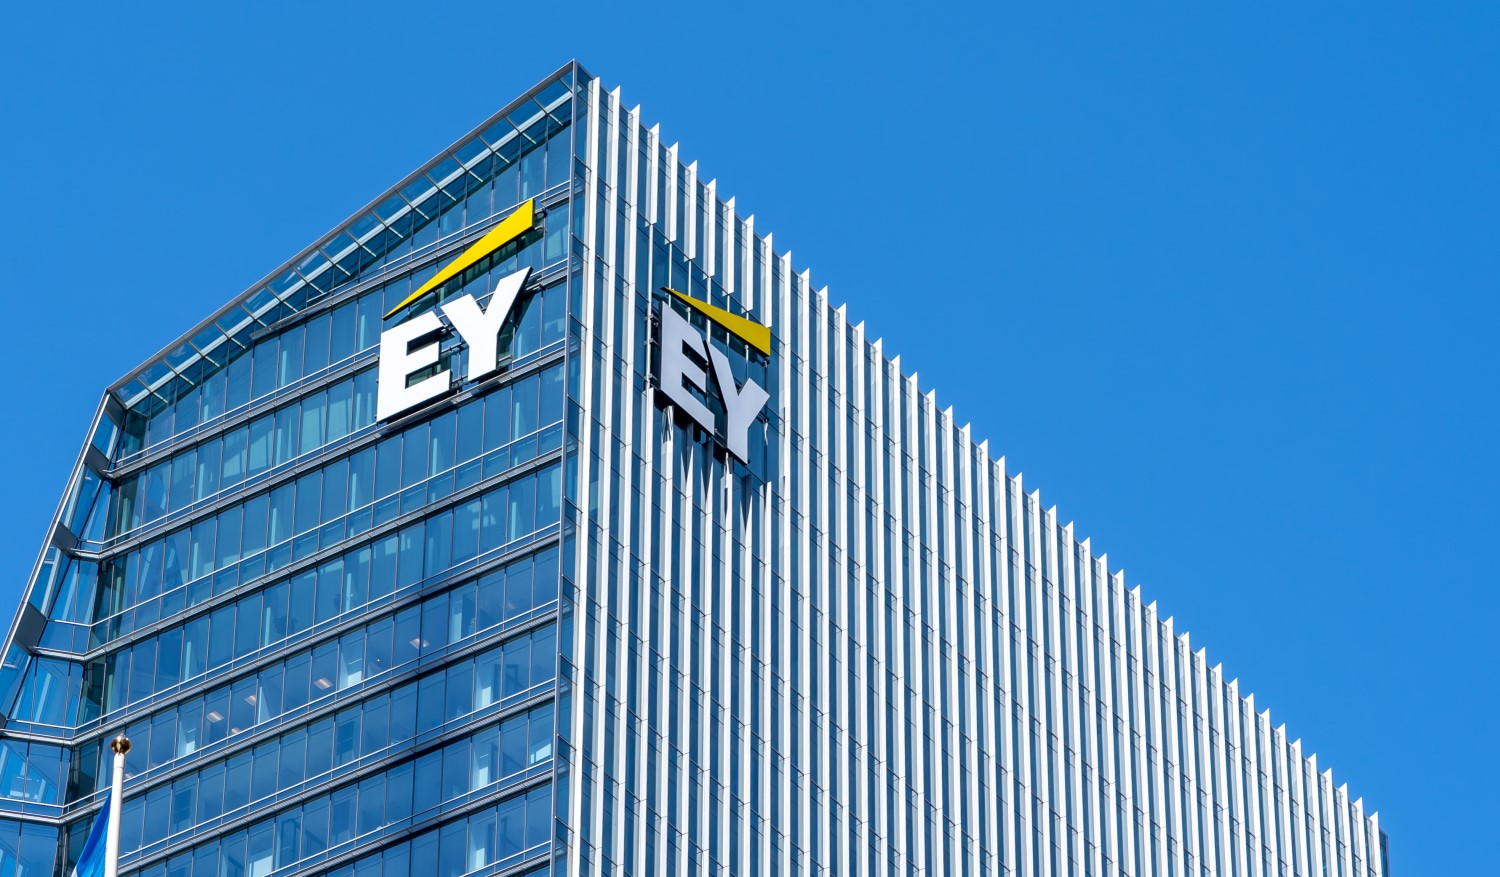 EY Launches Token and Smart Contract Testing Service in Open Beta - CoinDesk